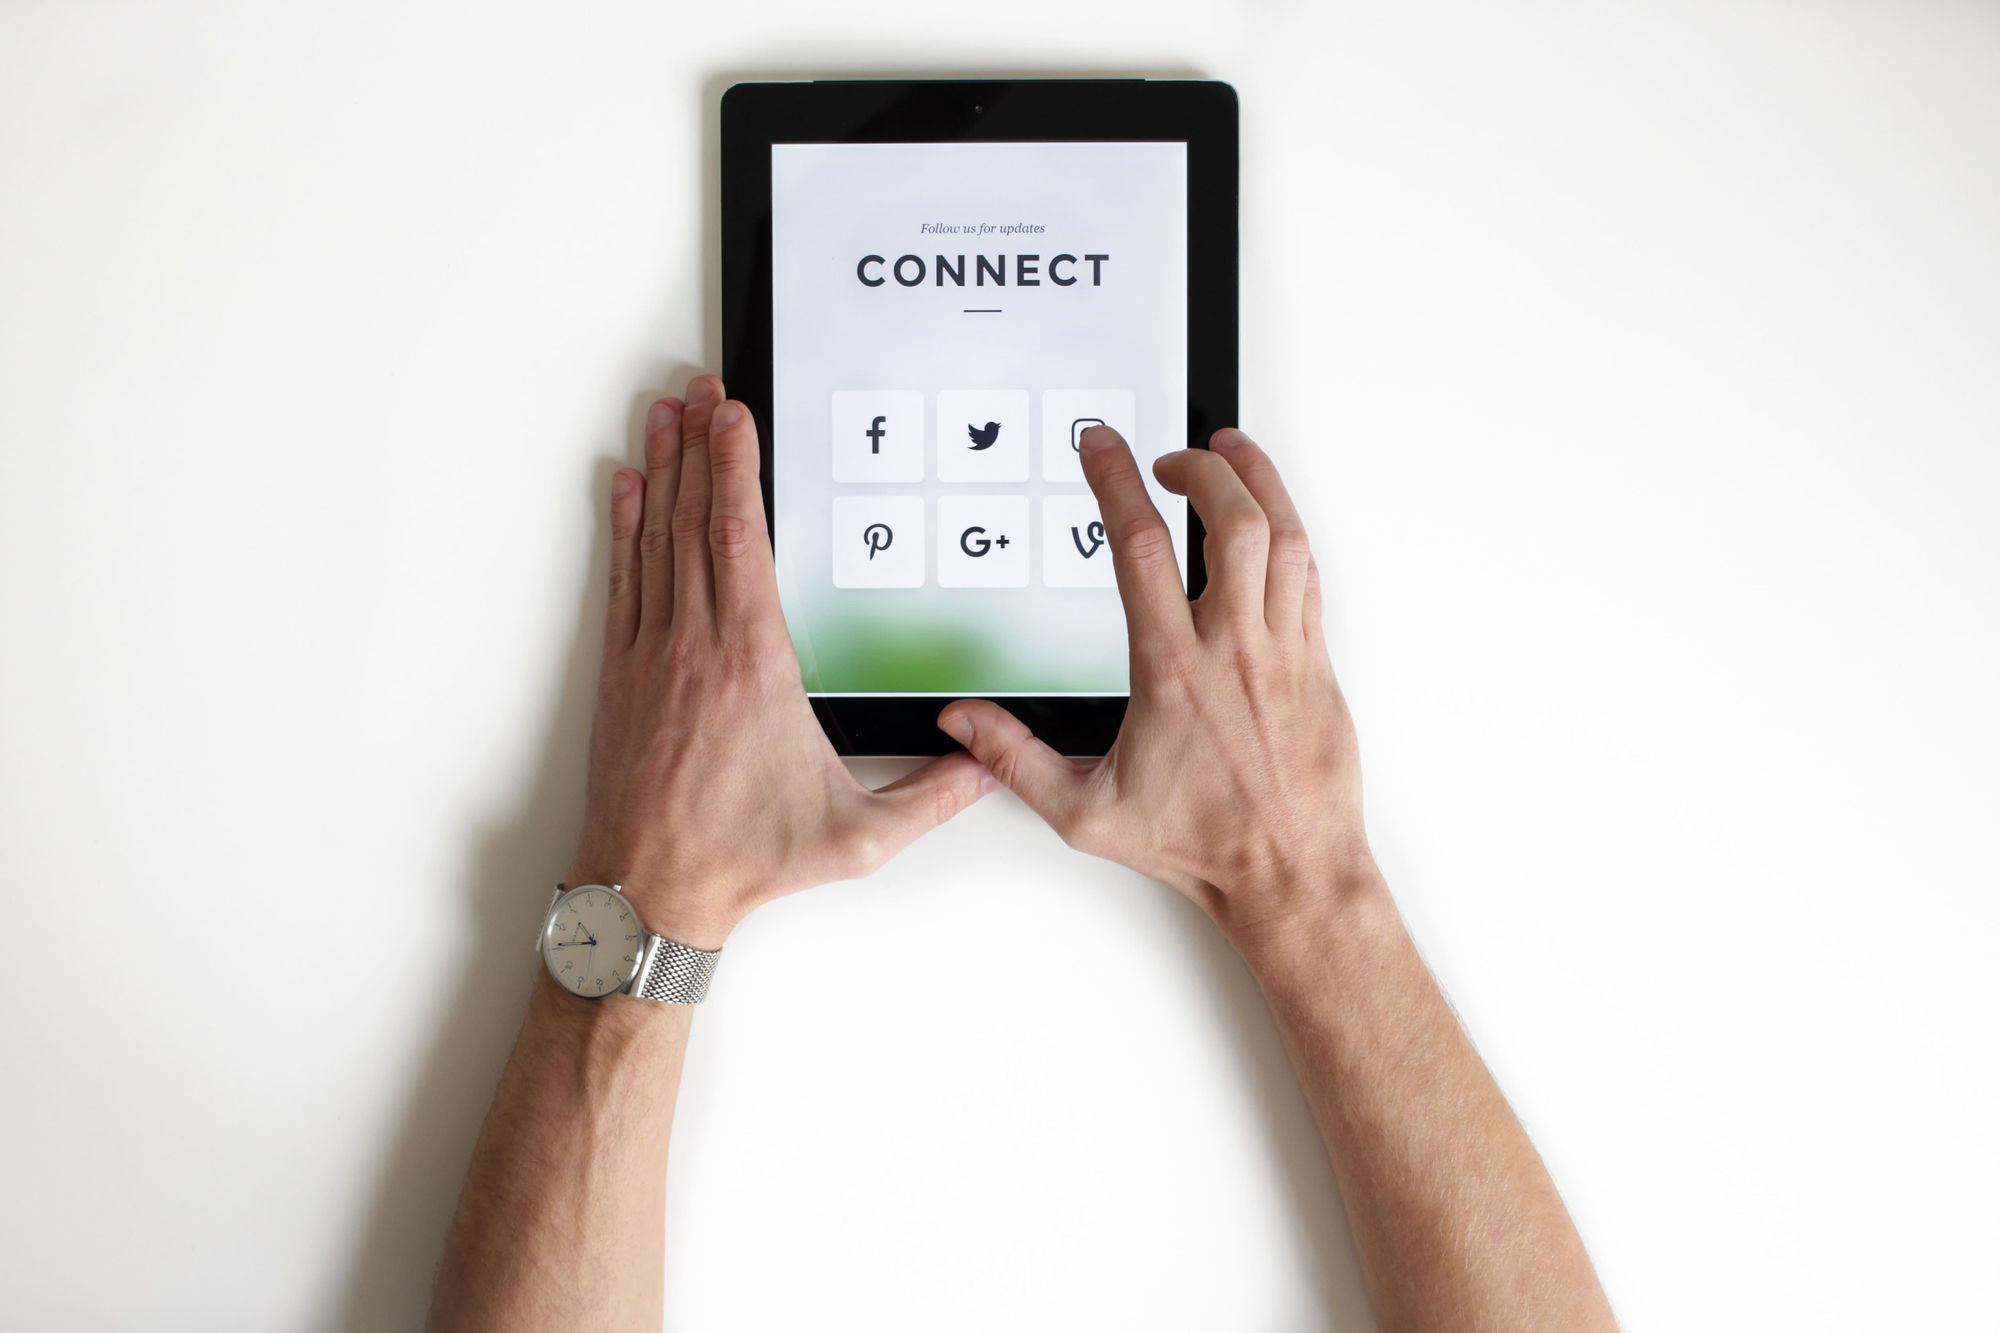 ipad-connecting-with-social-media